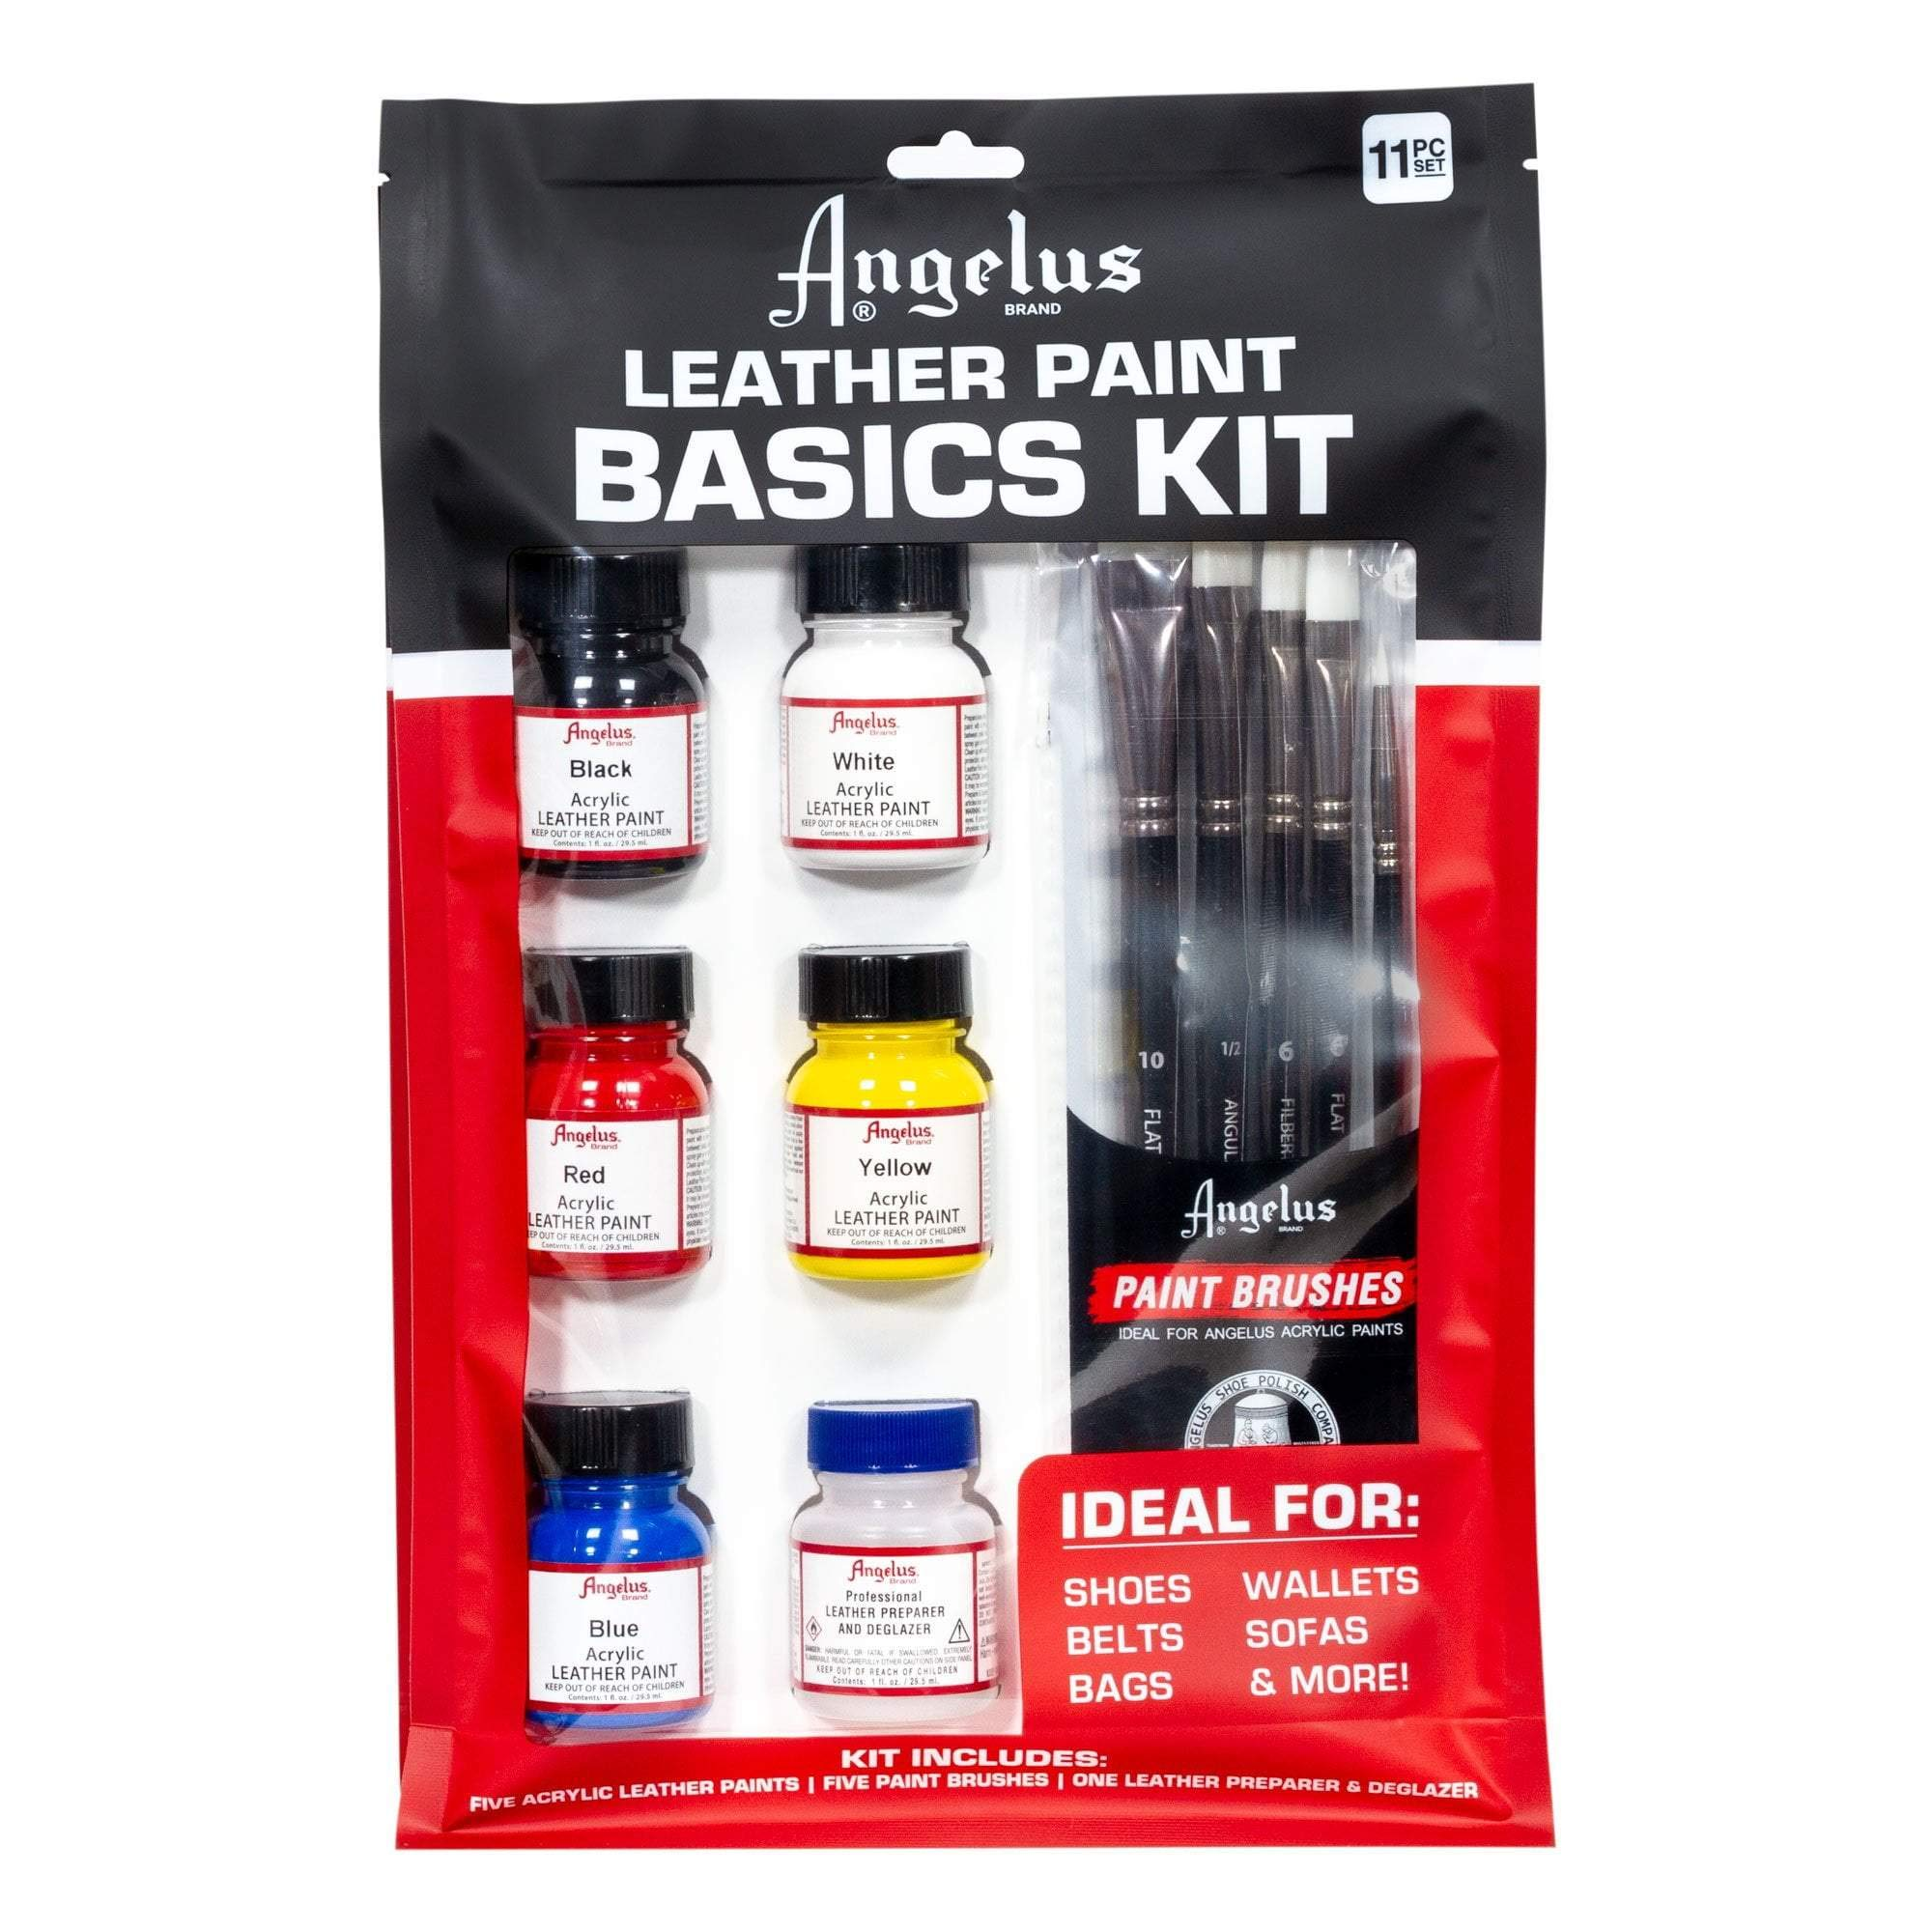 Angelus Leather Paint Basics Kit, Contains 1 Ounce Bottles of Black, White, Red, Blue, Yellow and Preparer, Plus a 5-Piece Angelus Brush Set (799-01-KIT) by Angelus